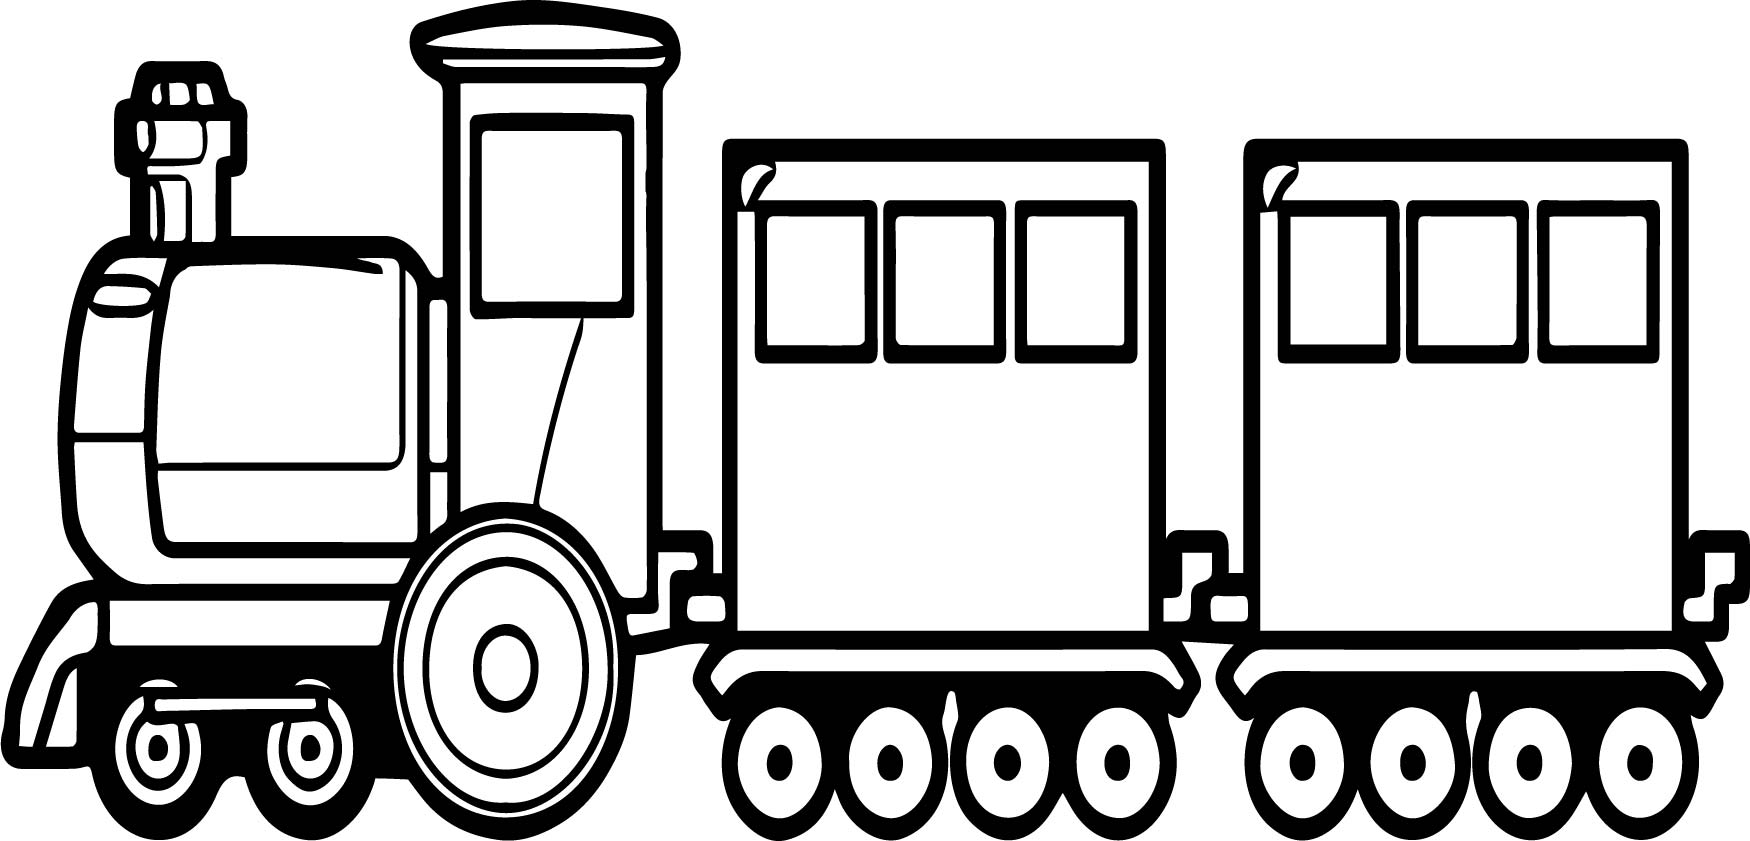 printable steam train coloring pages how to draw a train step by step trains transportation train pages printable steam coloring